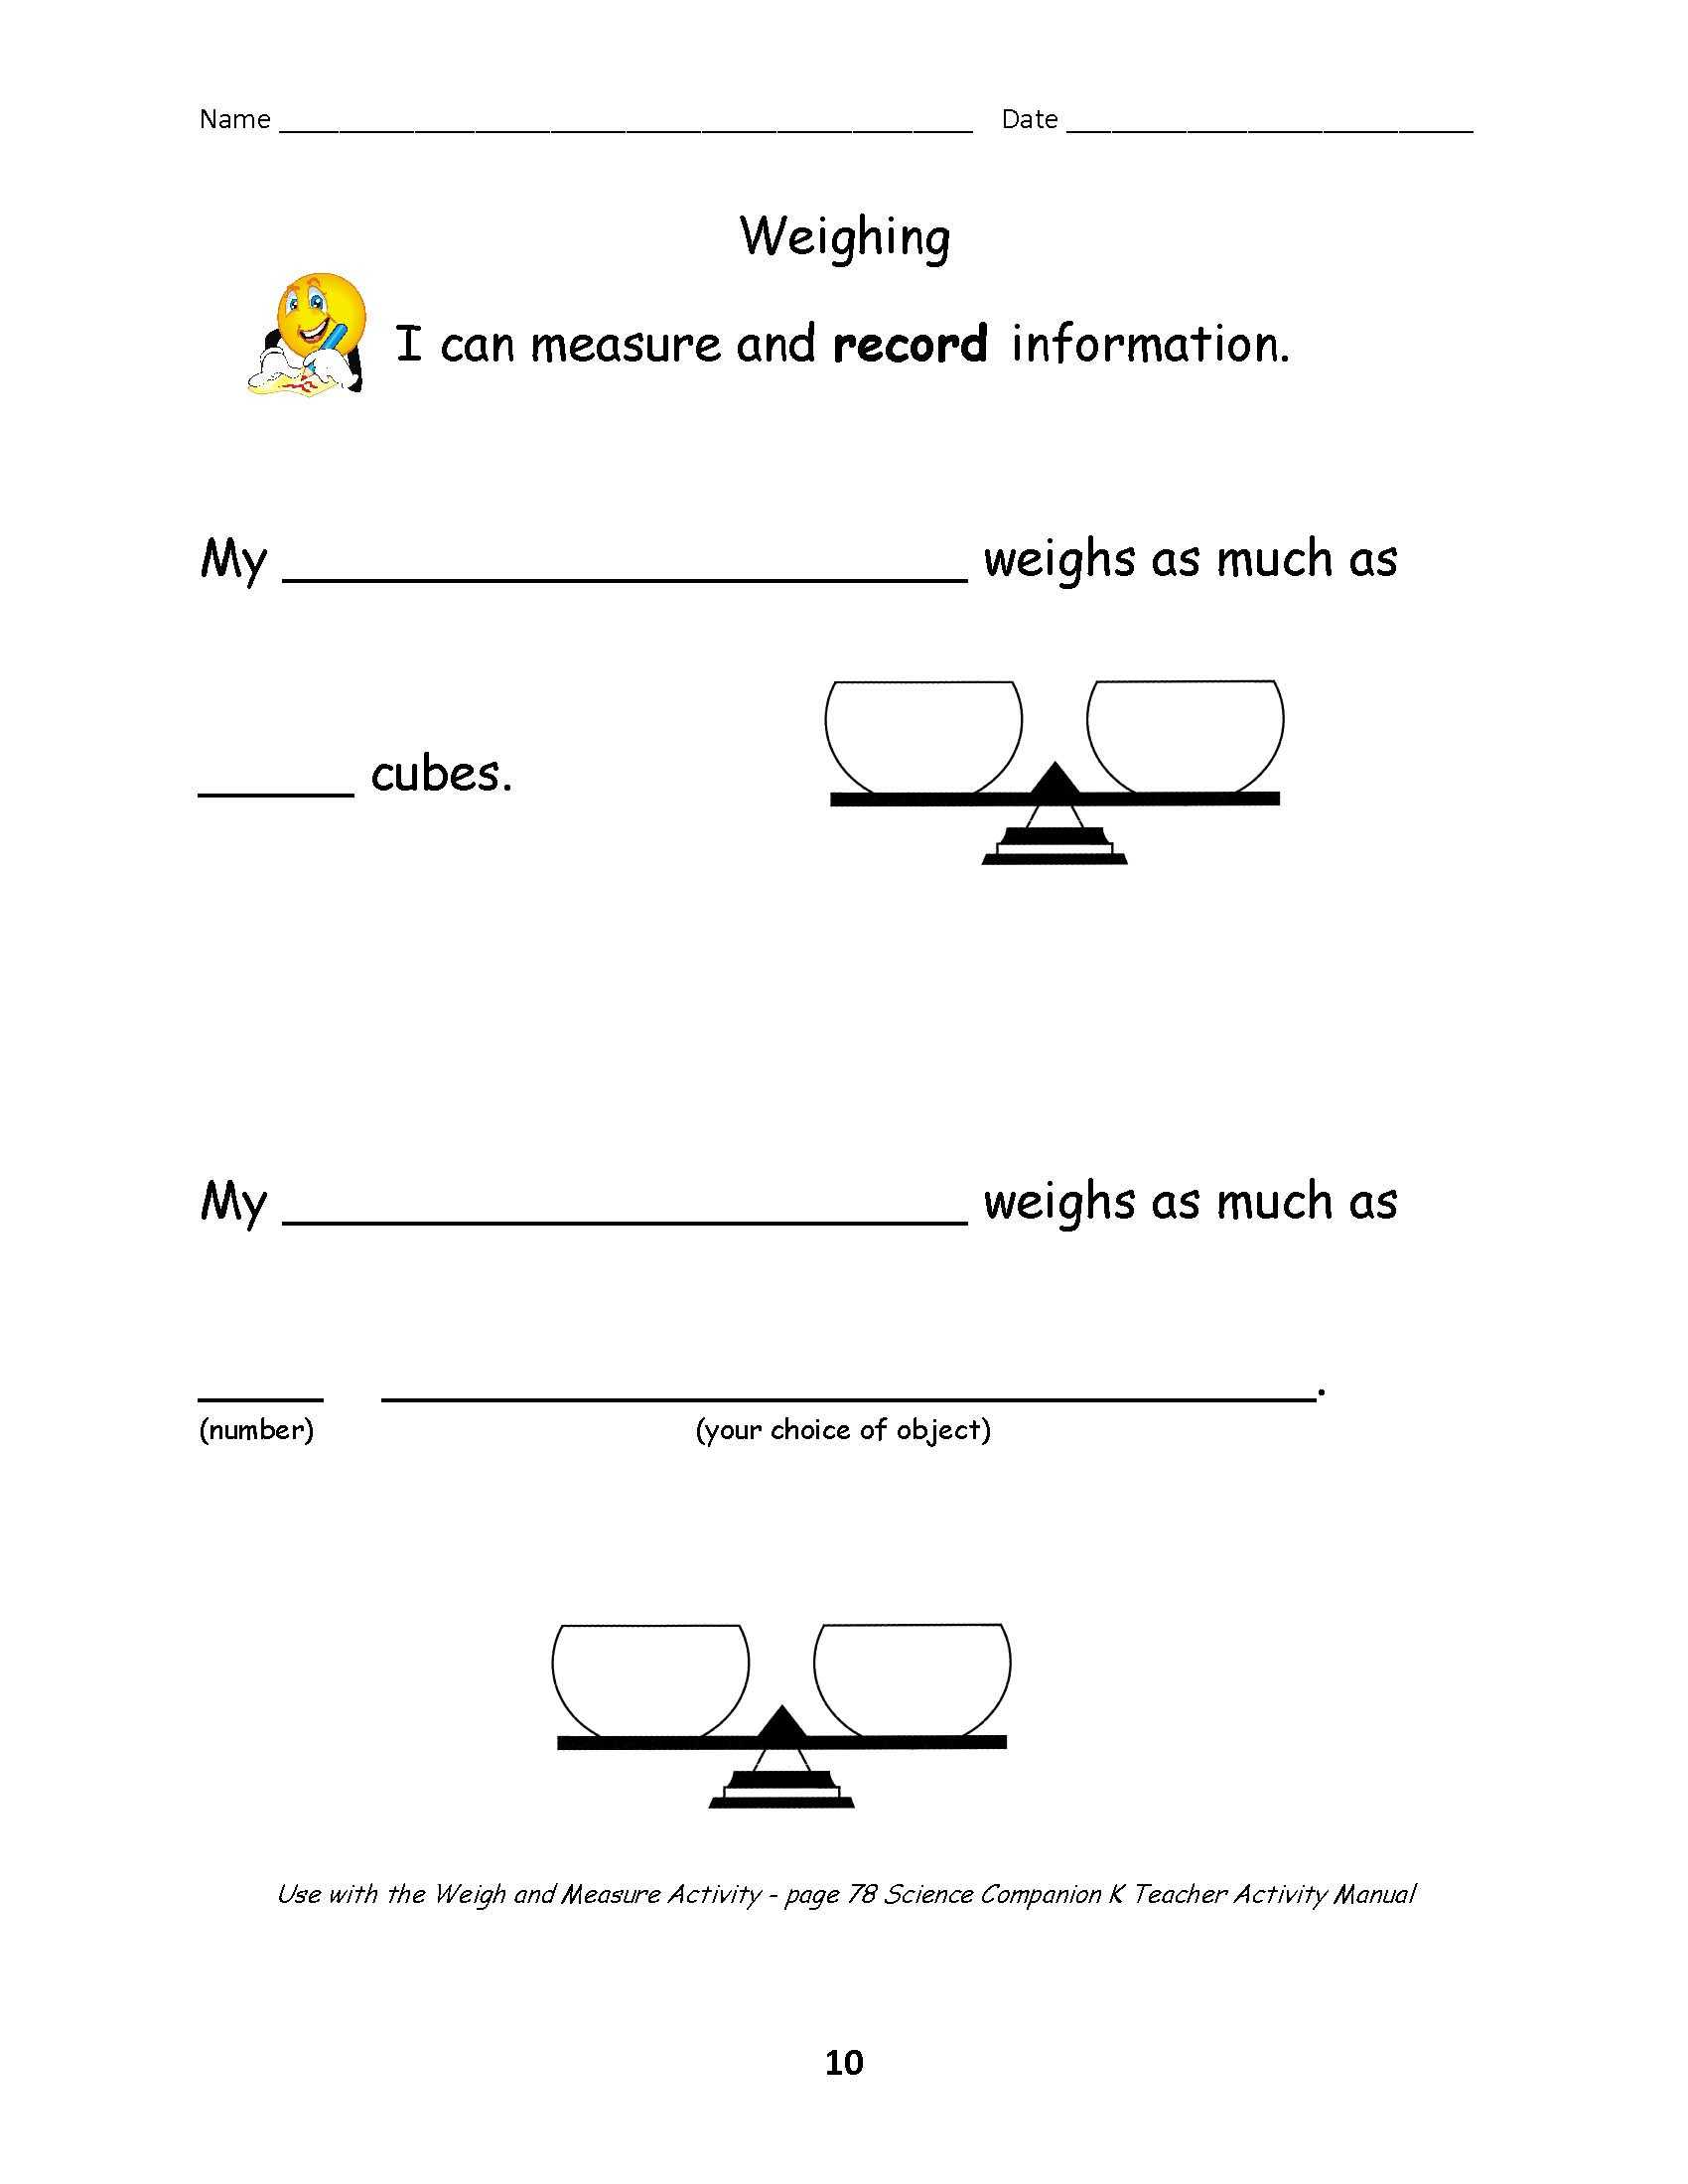 Crime Scene Activity Worksheets with Science and Children Line Connections